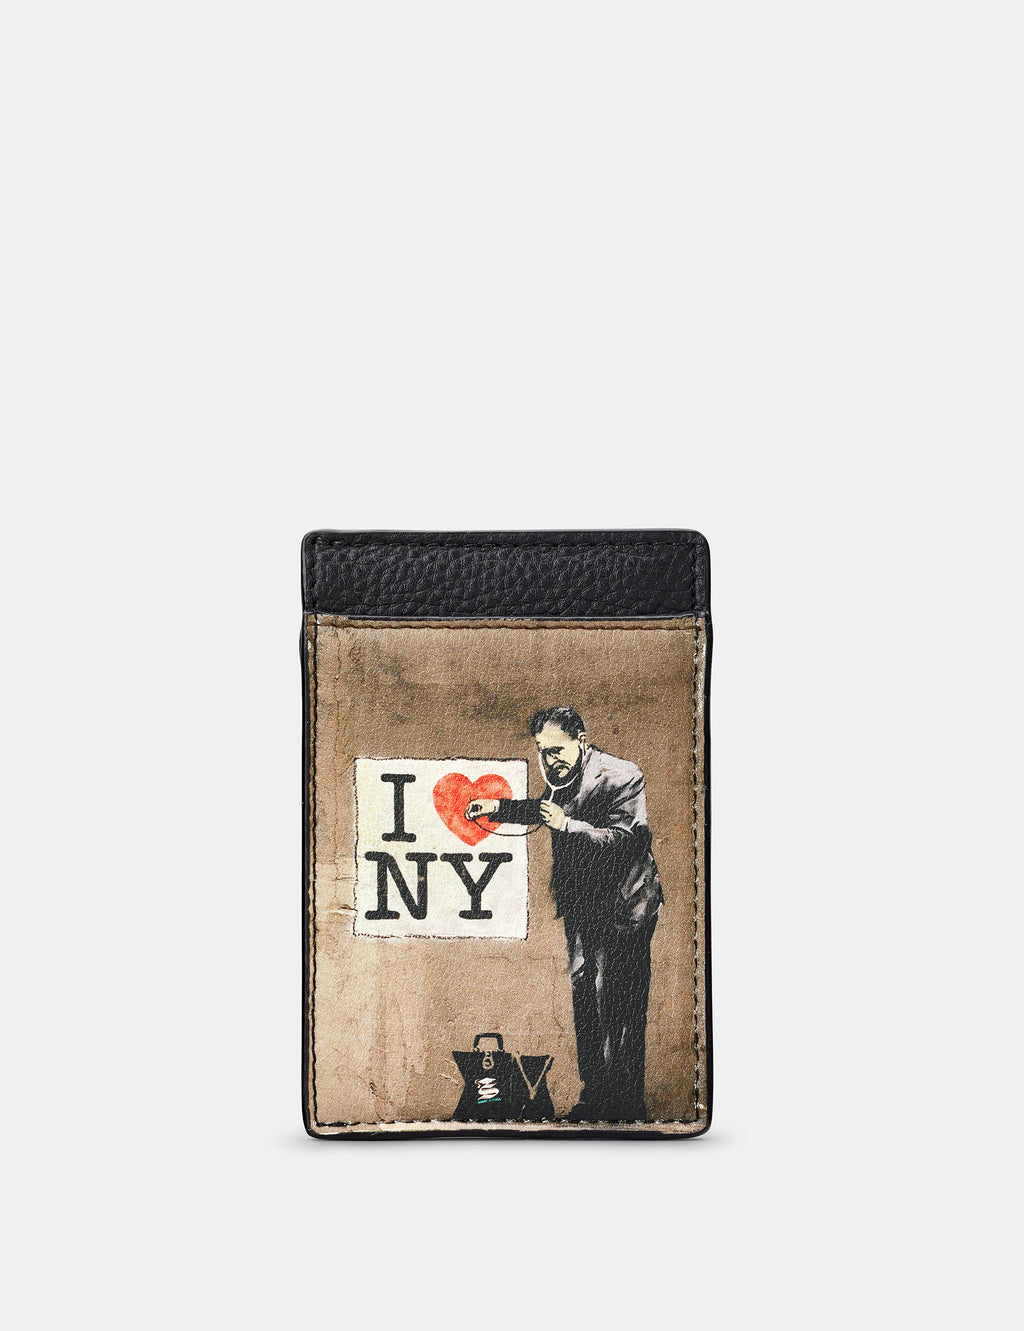 Banksy NY Compact Leather Card Holder